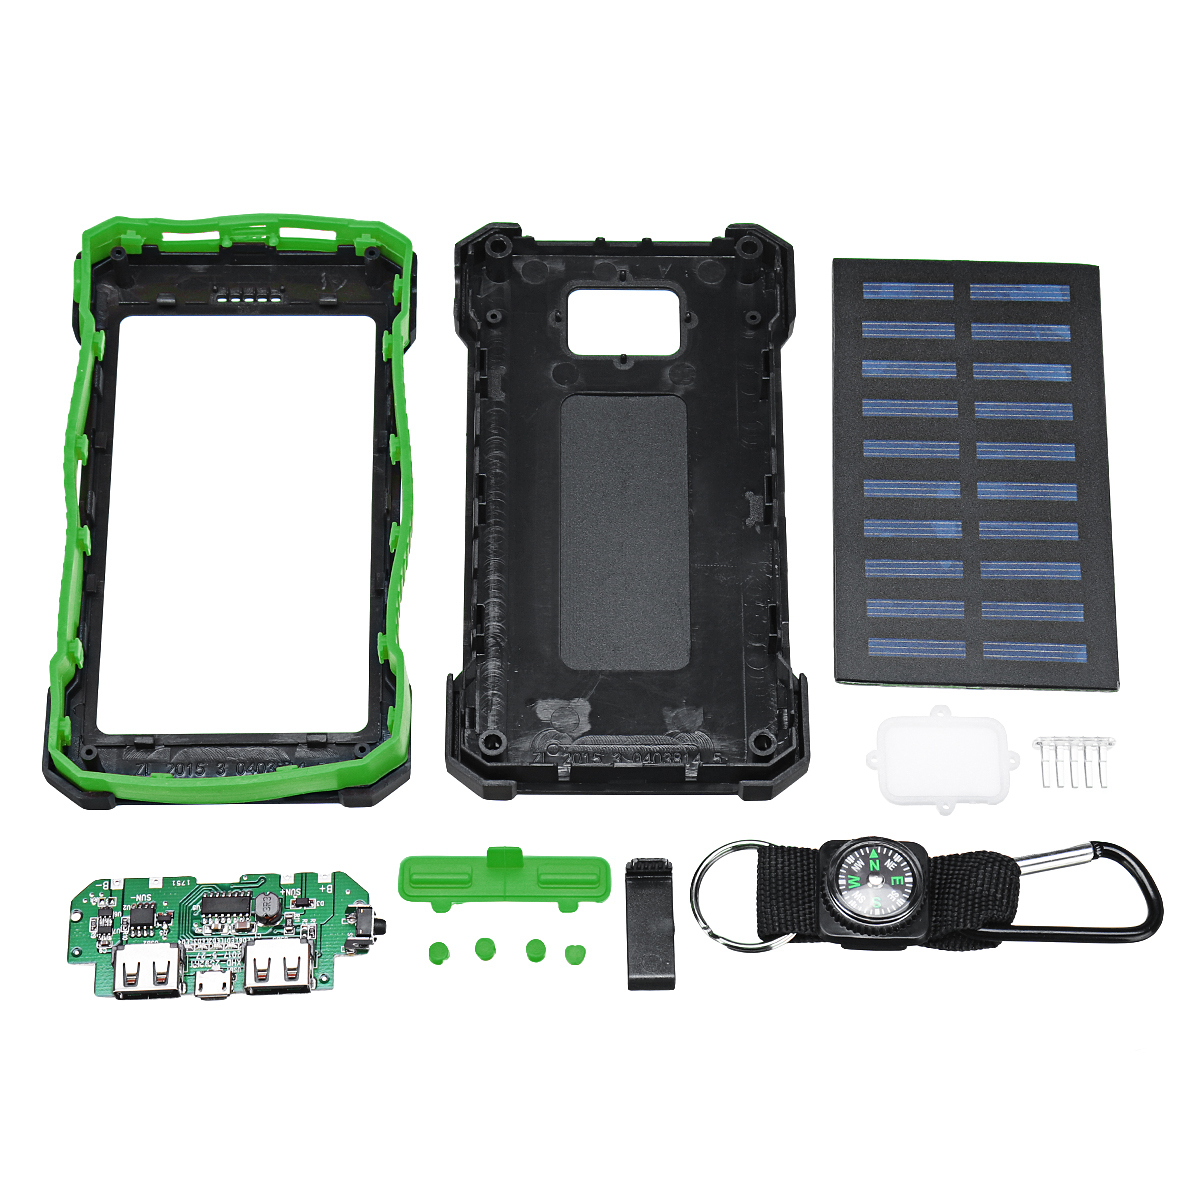 2 USB Waterproof DIY Solar Power Bank Shell Case with LED Lamp Compass Climbing Buckle